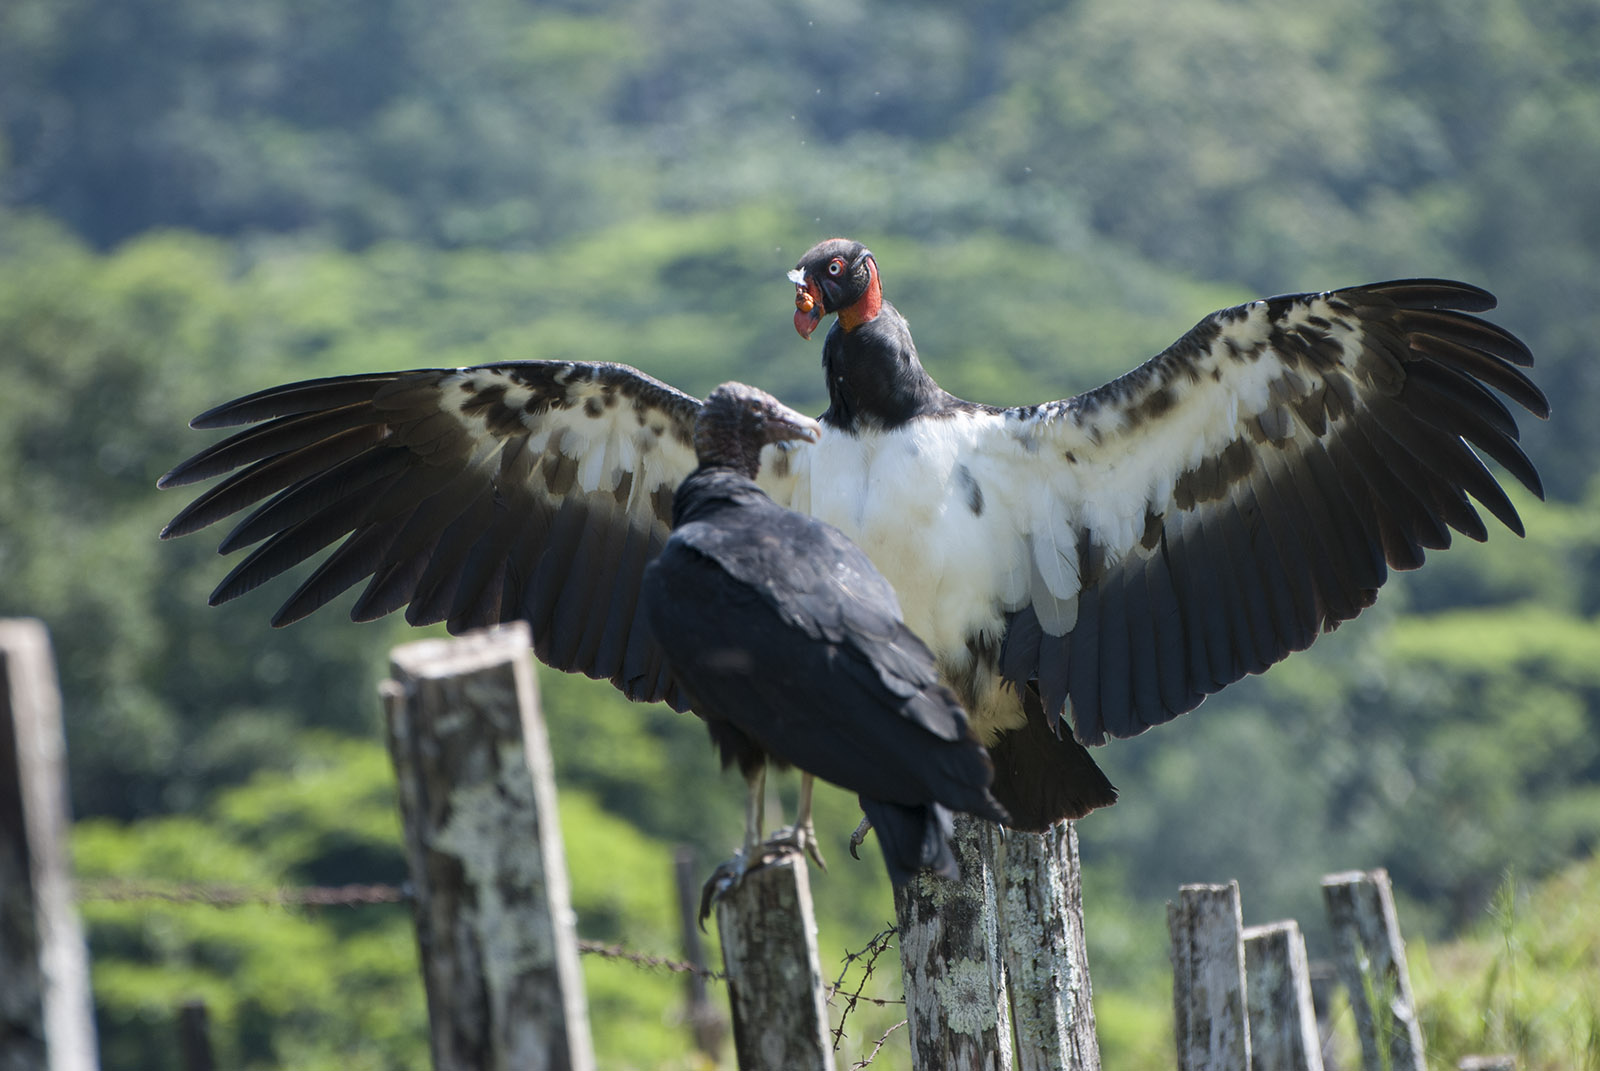 King Vulture spreading its wings at the lowlands of Costa Rica